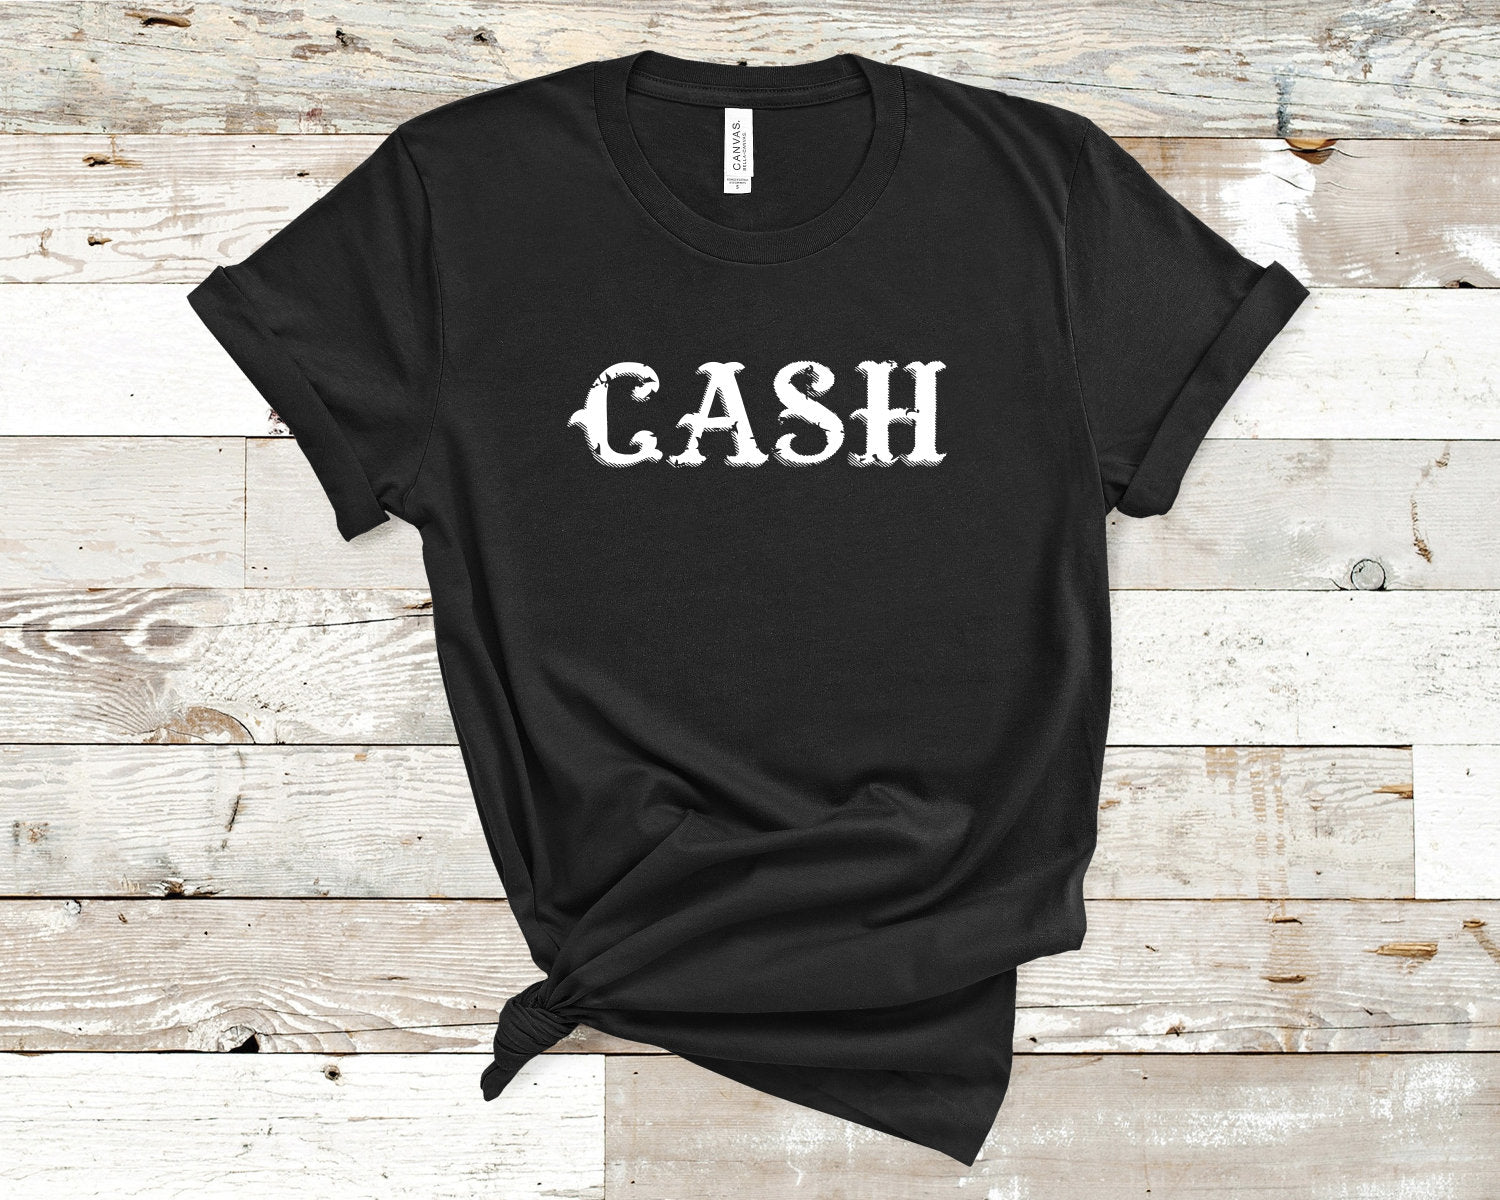 CASH shirt- Johnny Cash Shirt- Vintage Rock shirt- Vintage Country shirt-